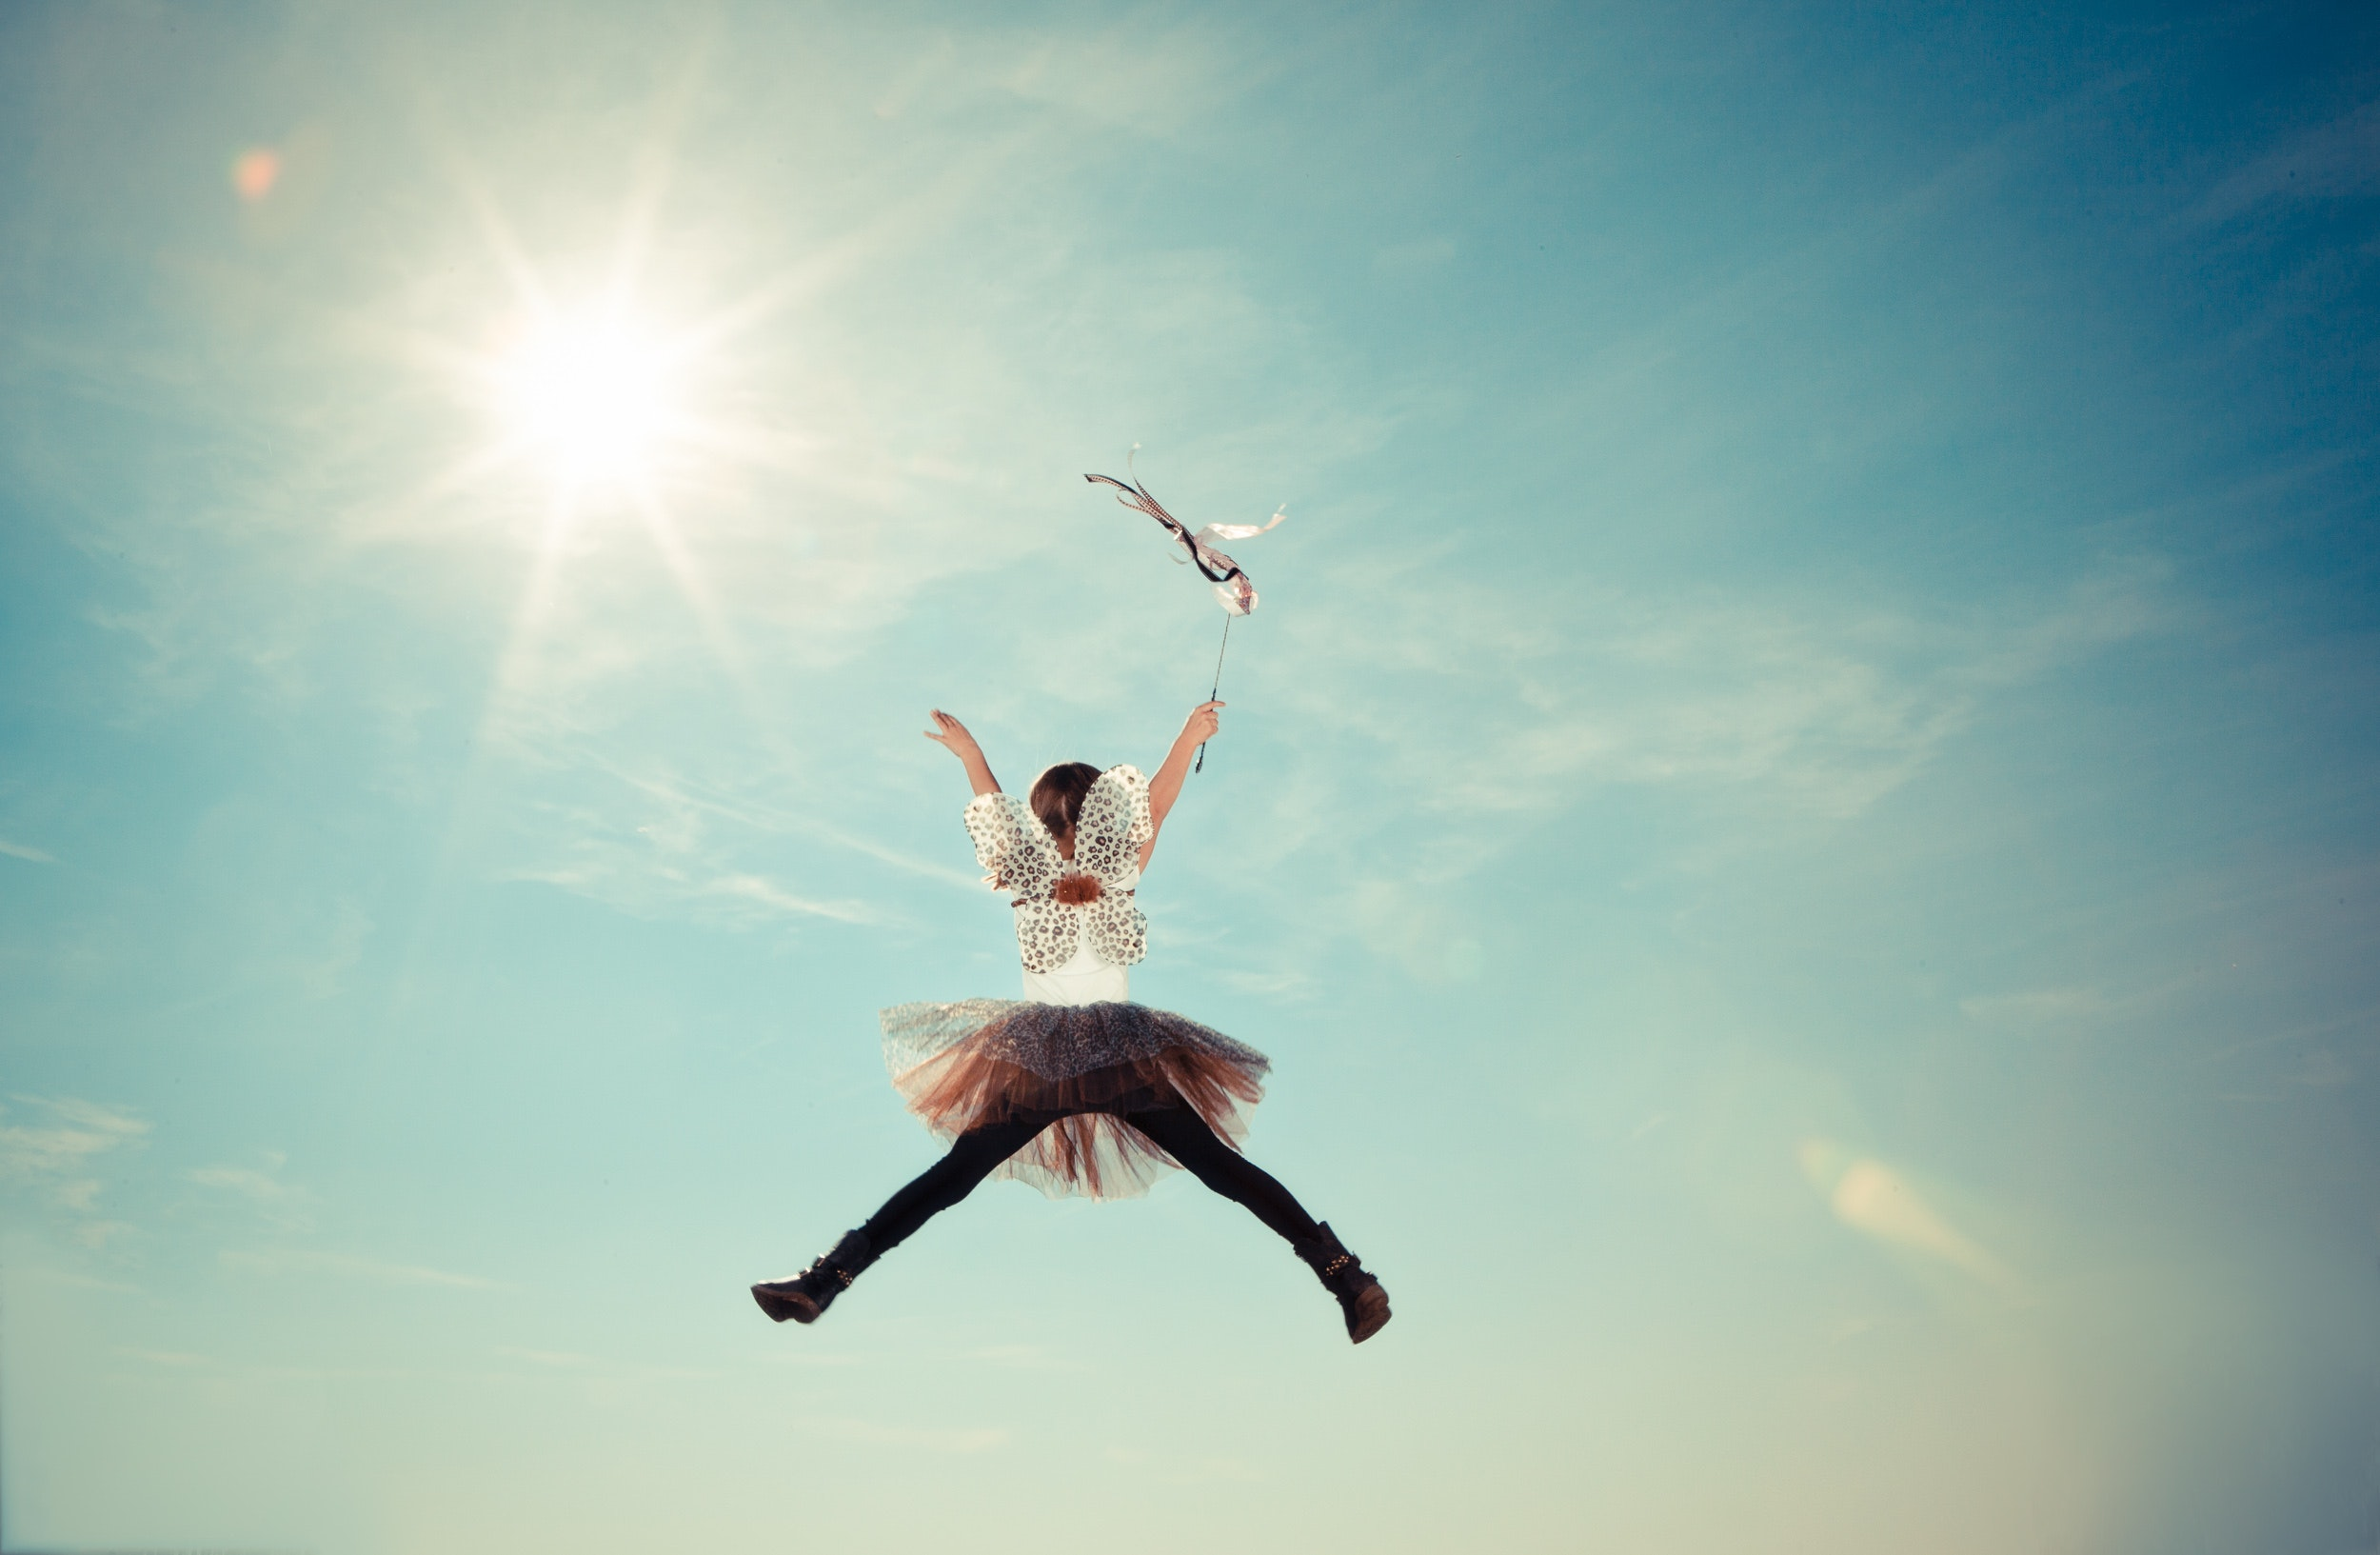 Person Jumping Photo, Child, Costume, Fairy, Fly, HQ Photo